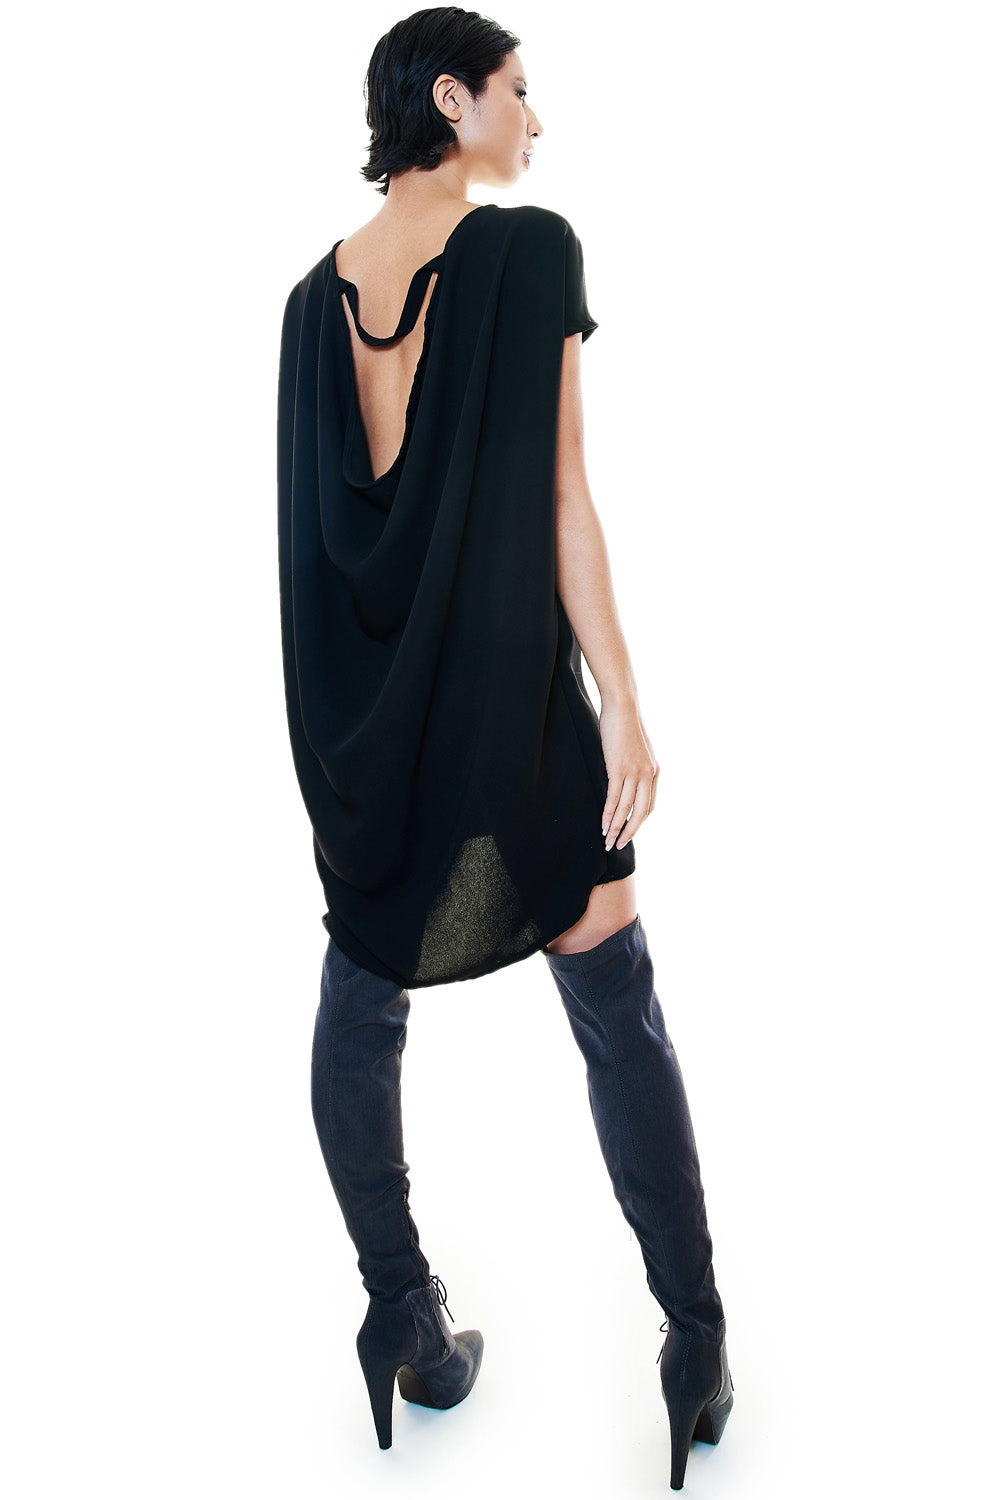 SLEEVELESS BLACK TUNIC DRESS - casacomostyle